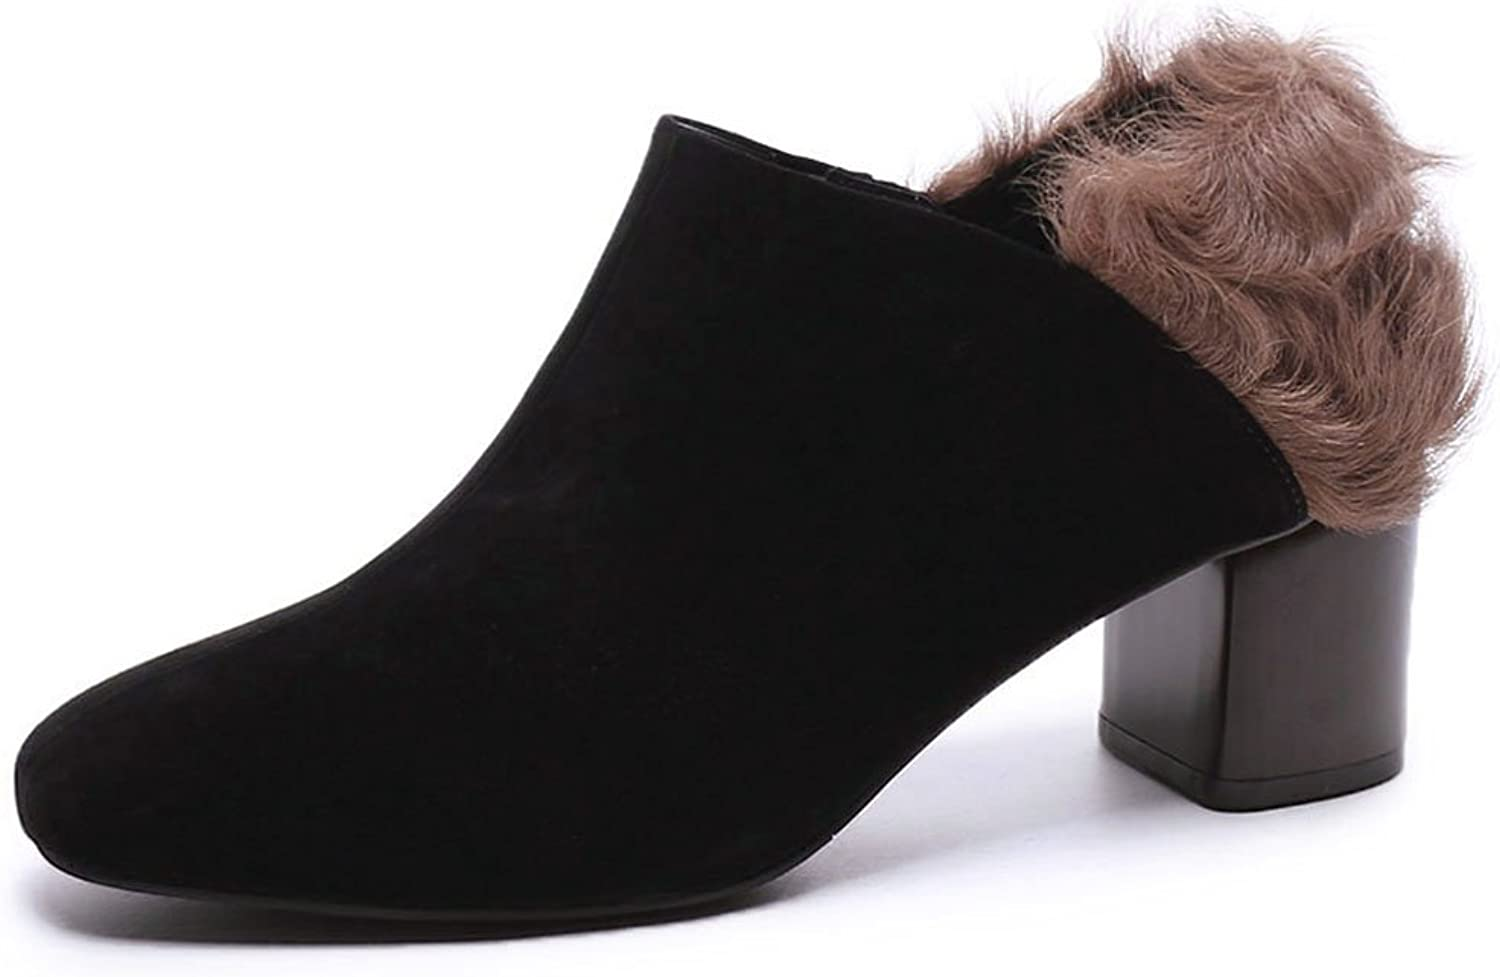 MINIVOG Women's Kid Seude Boot Ankle High Square Toe Booties